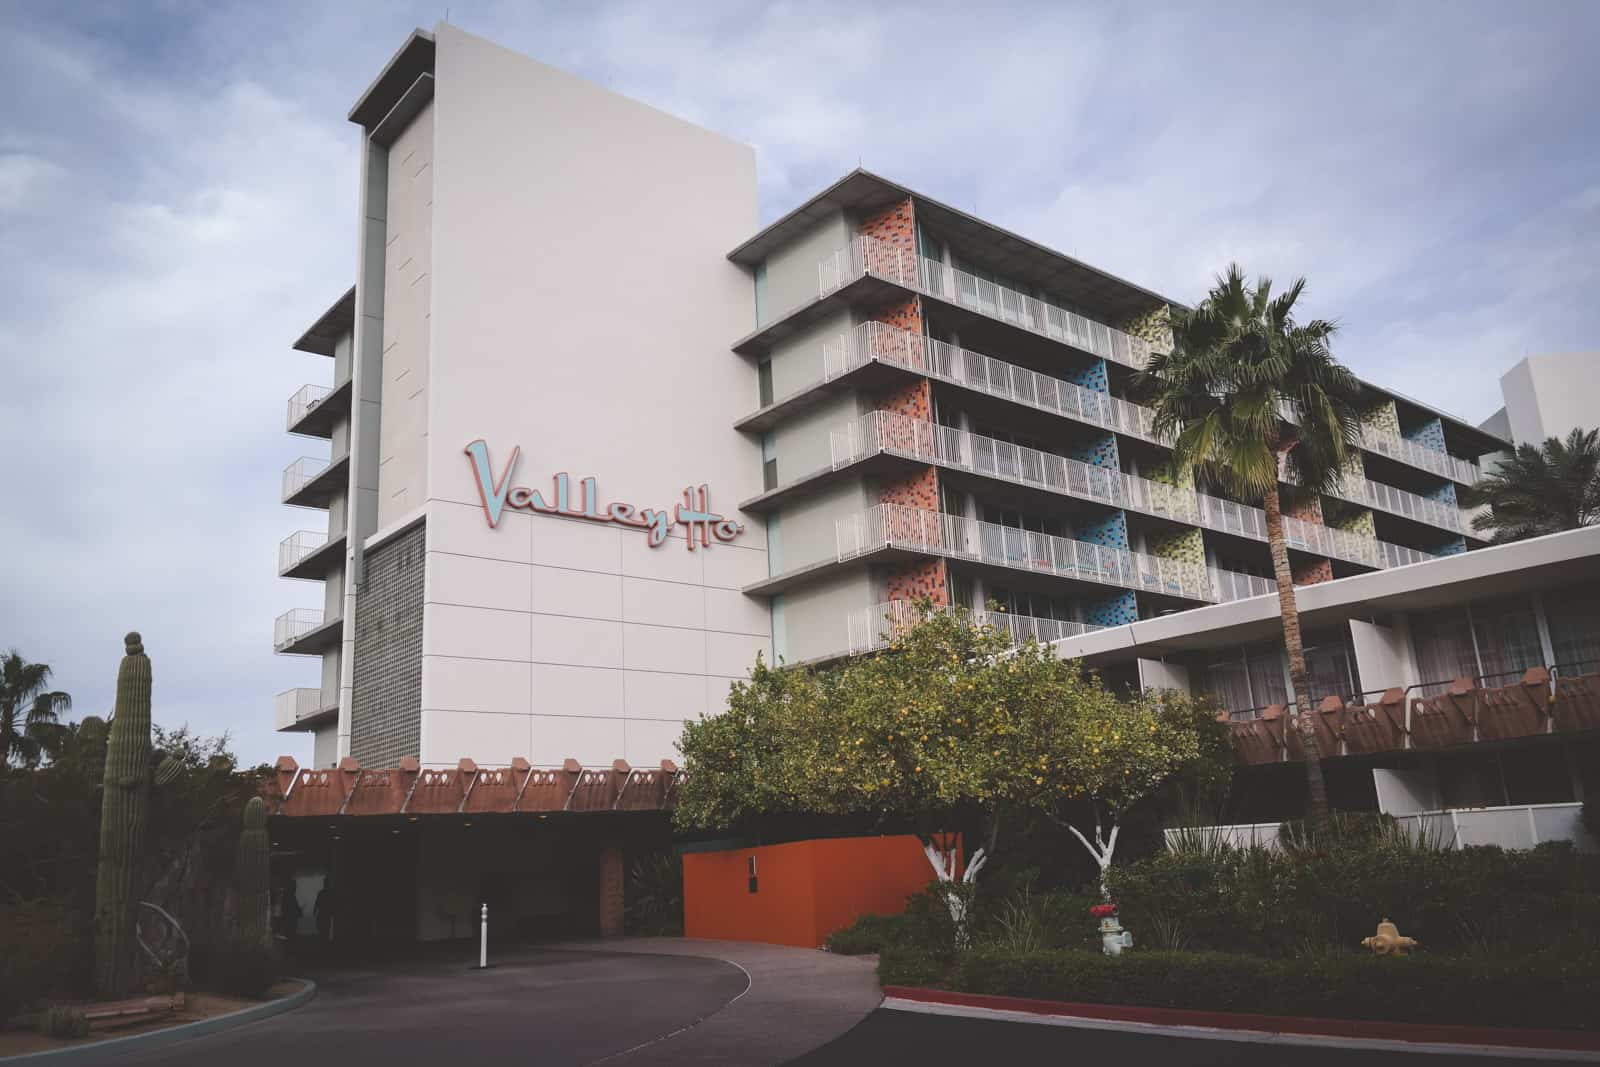 Where to stay in Scottsdale - Hotel Valley Ho